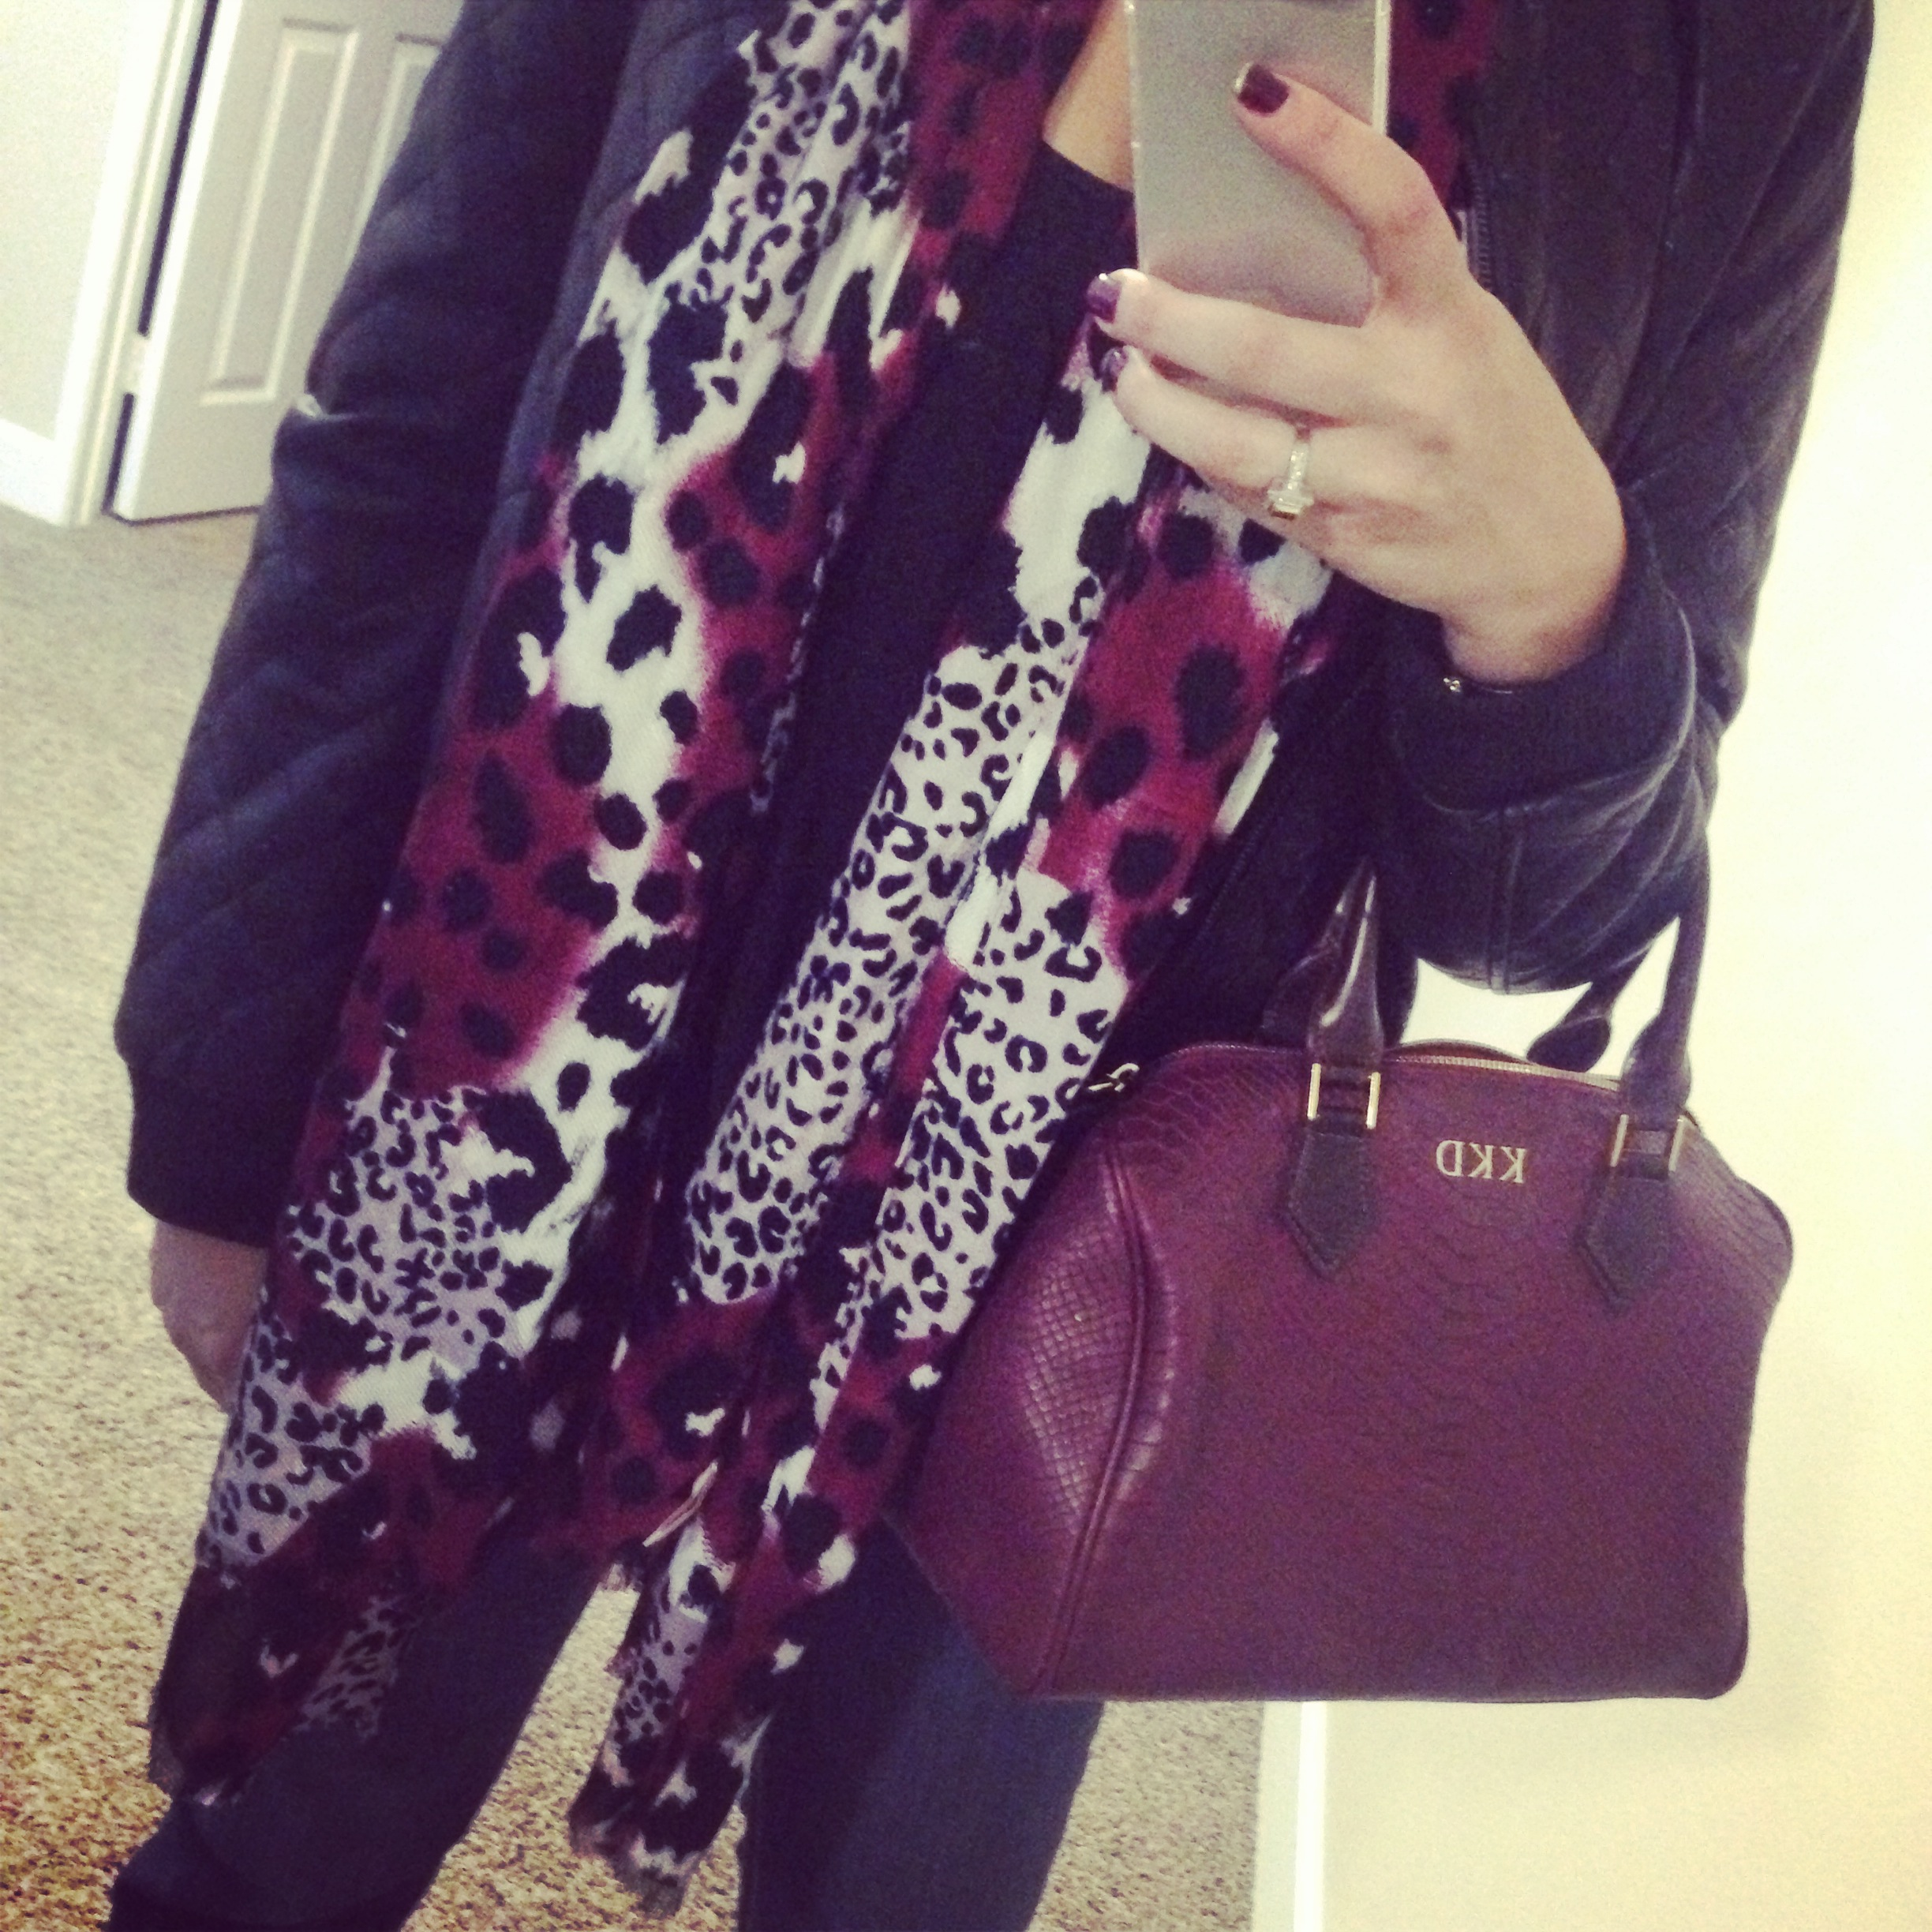 Blouse: Wayf; Scarf: Nordstrom Rack; Jacket: Forever 21; Jeans: Southern Thread; Ring: Euro Art Jewelers; Boots: Ariat by Country Outfitter; Bag: Gigi New York